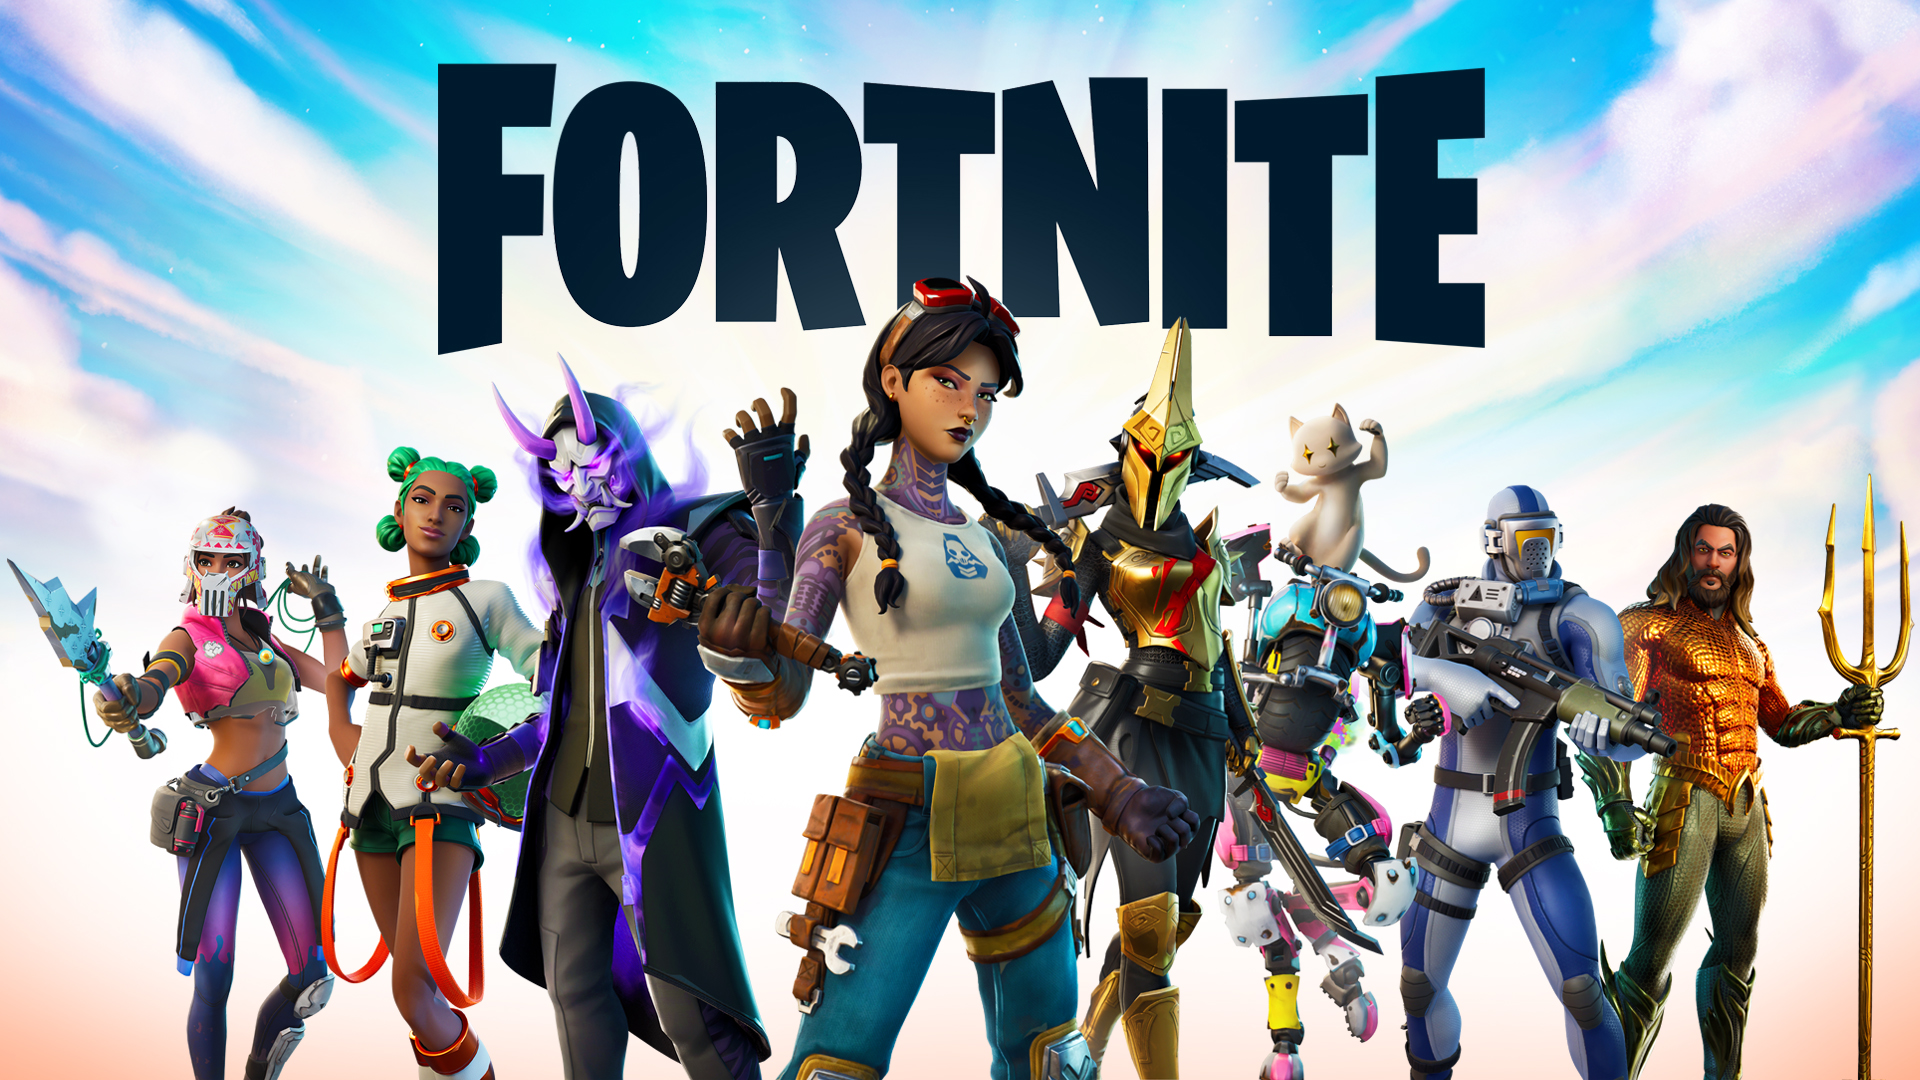 Fortntie Season 4 : Season 4 of battle royale ran from may 1 to july 11, 2018.